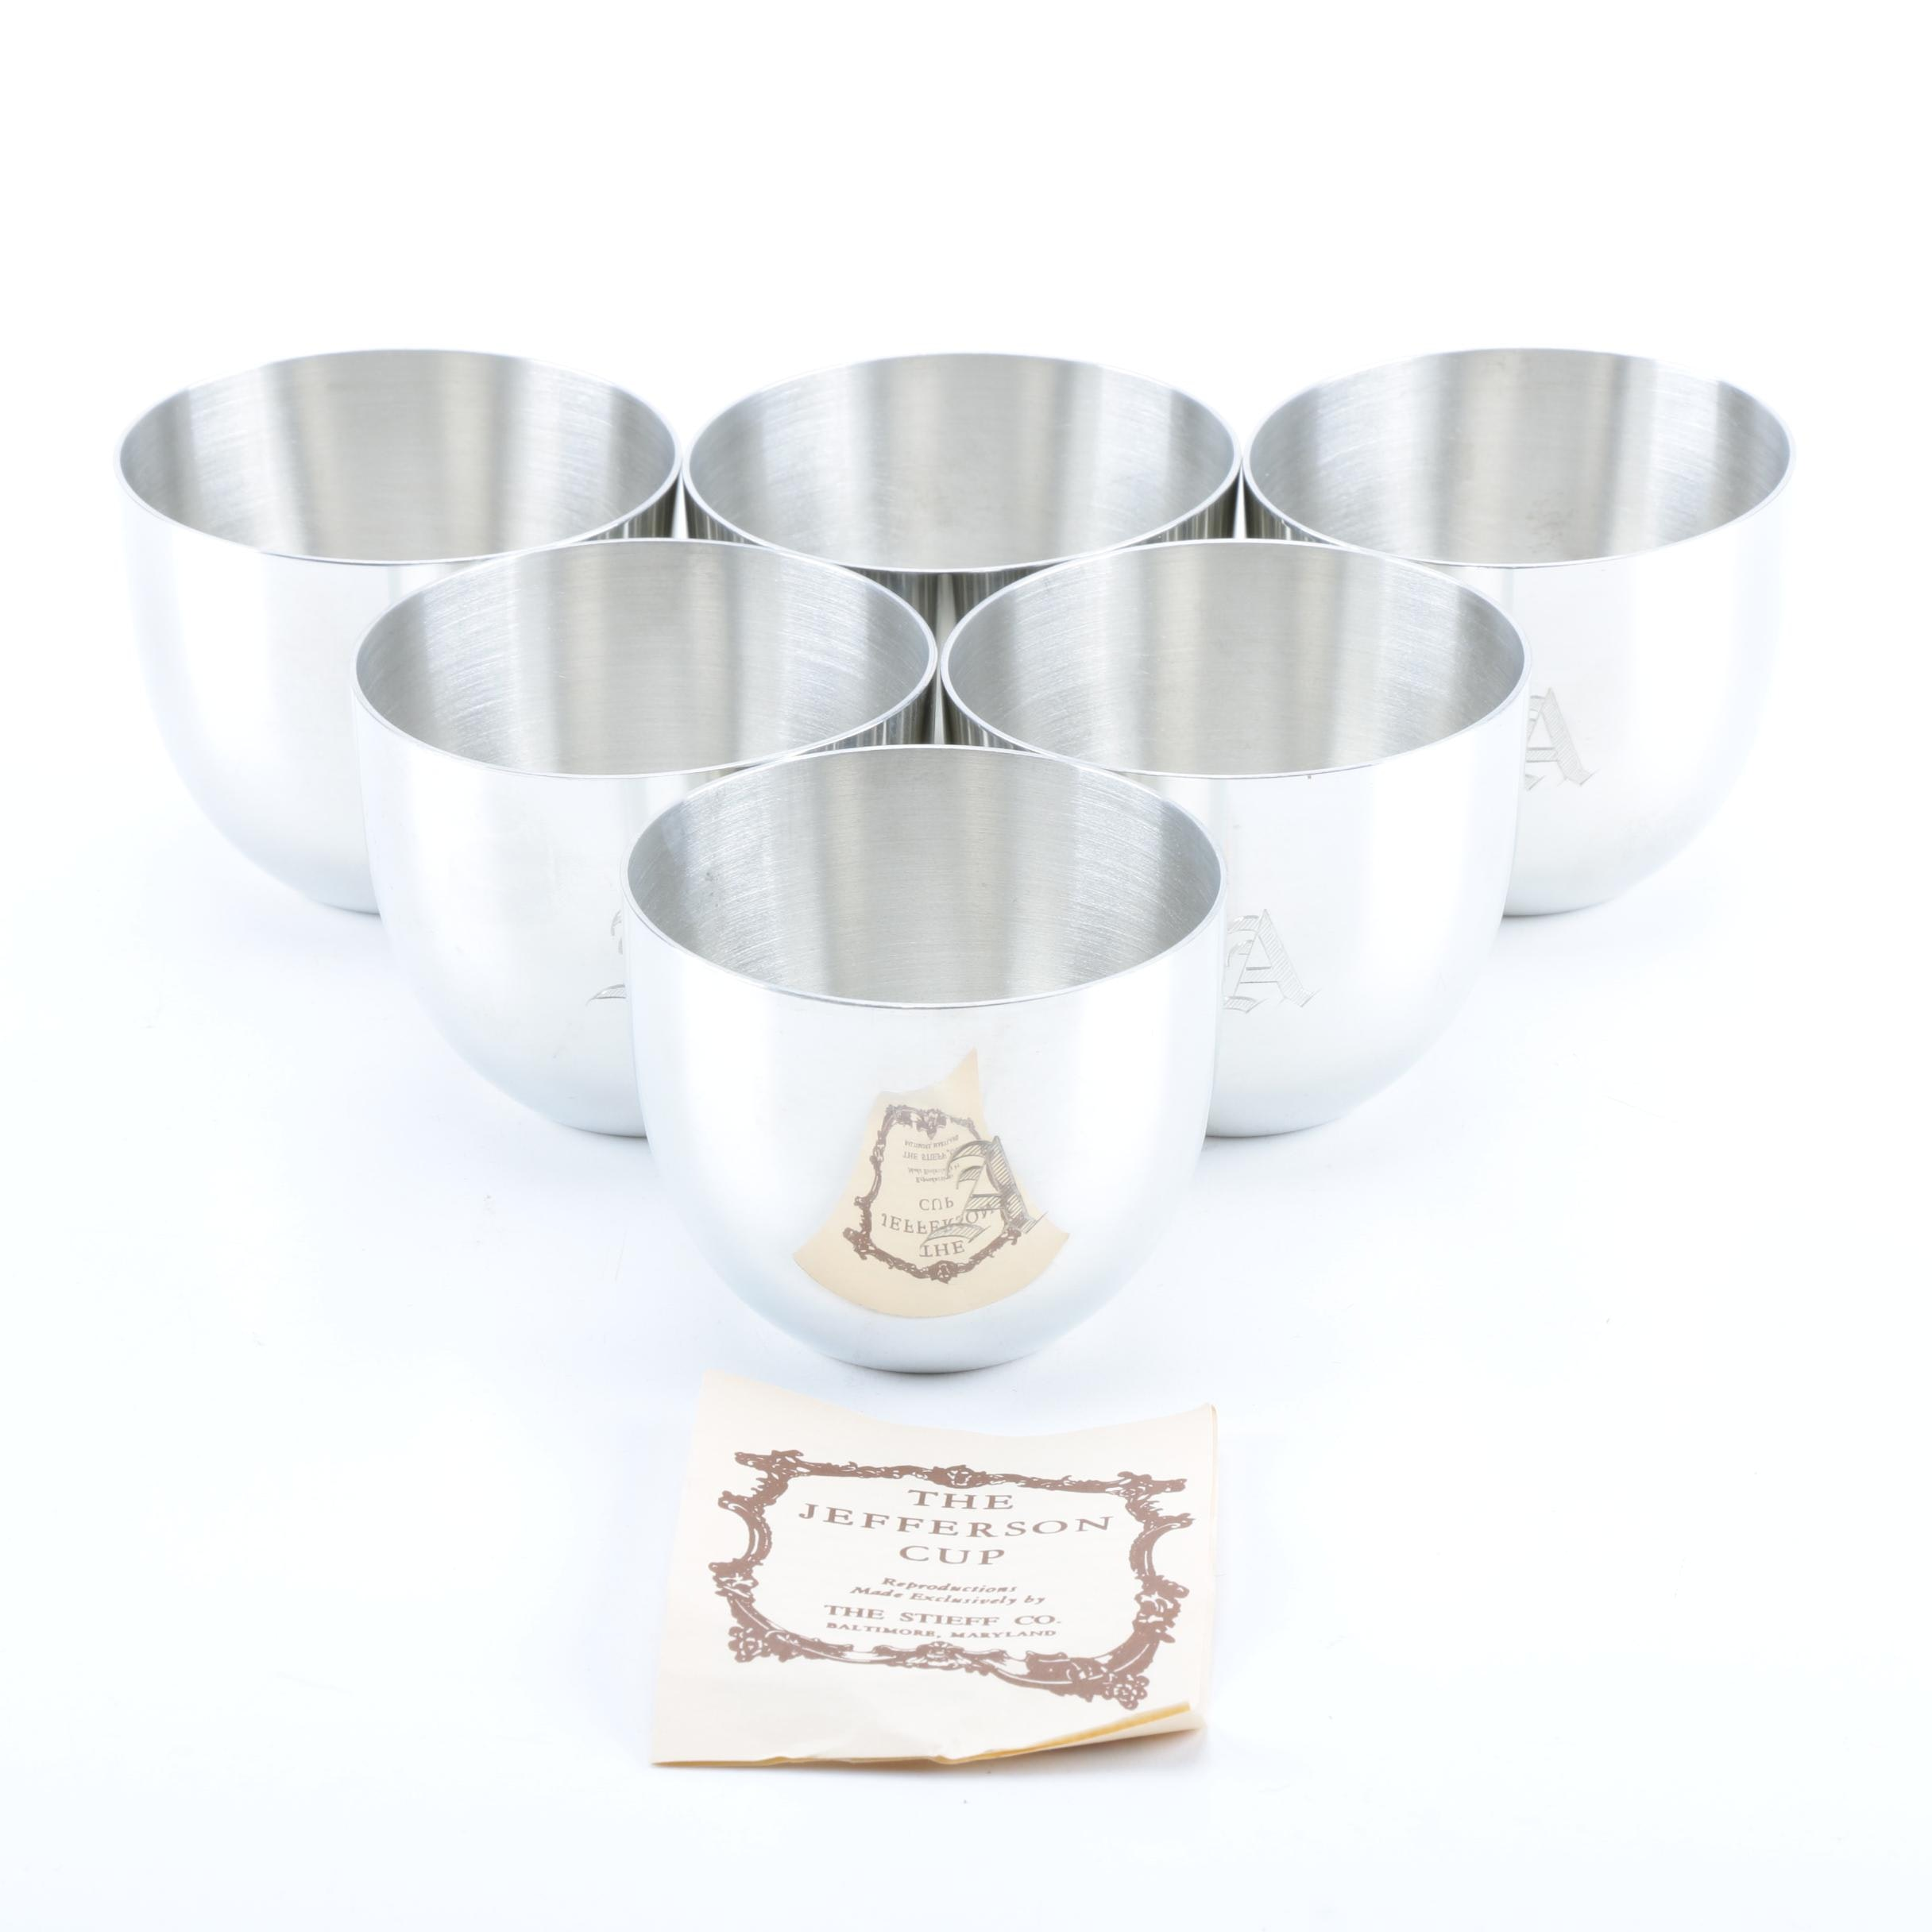 The Stieff Co. Reproduction Pewter Jefferson Cups